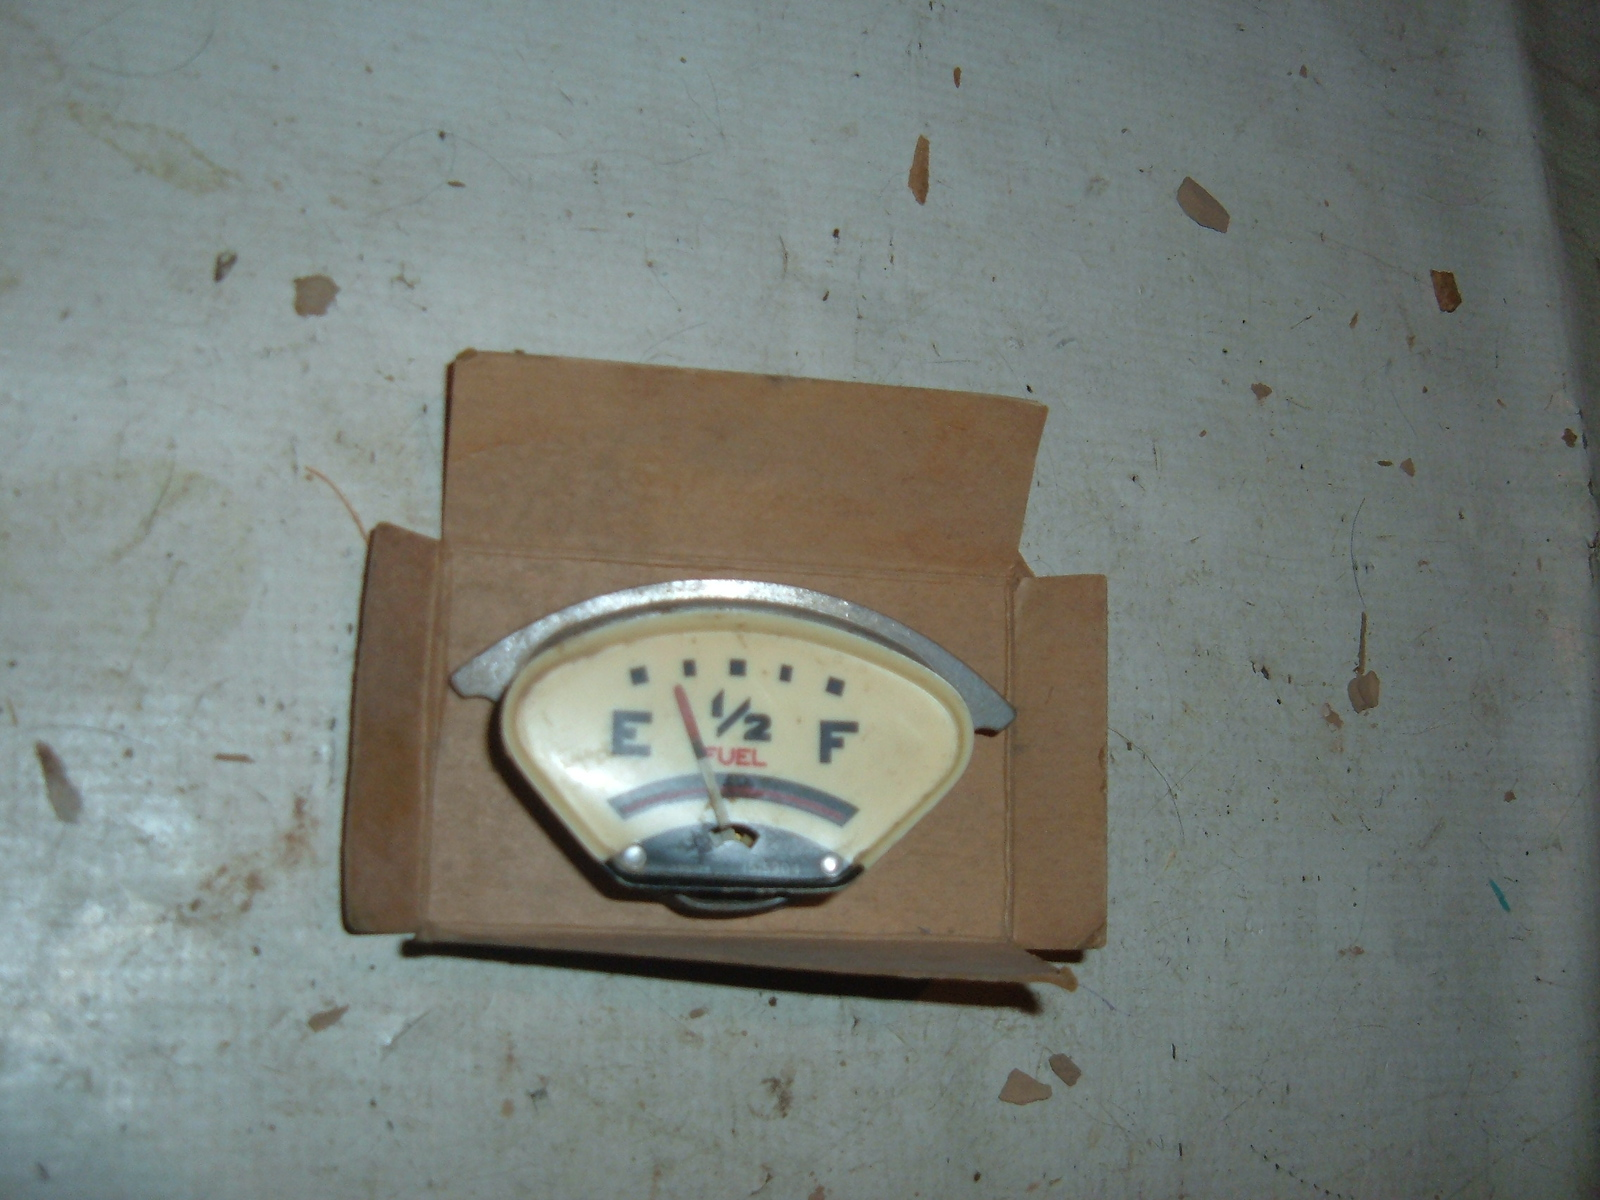 1936 pontiac fuel gas gauge nos gm 1515304 (z 1515304)